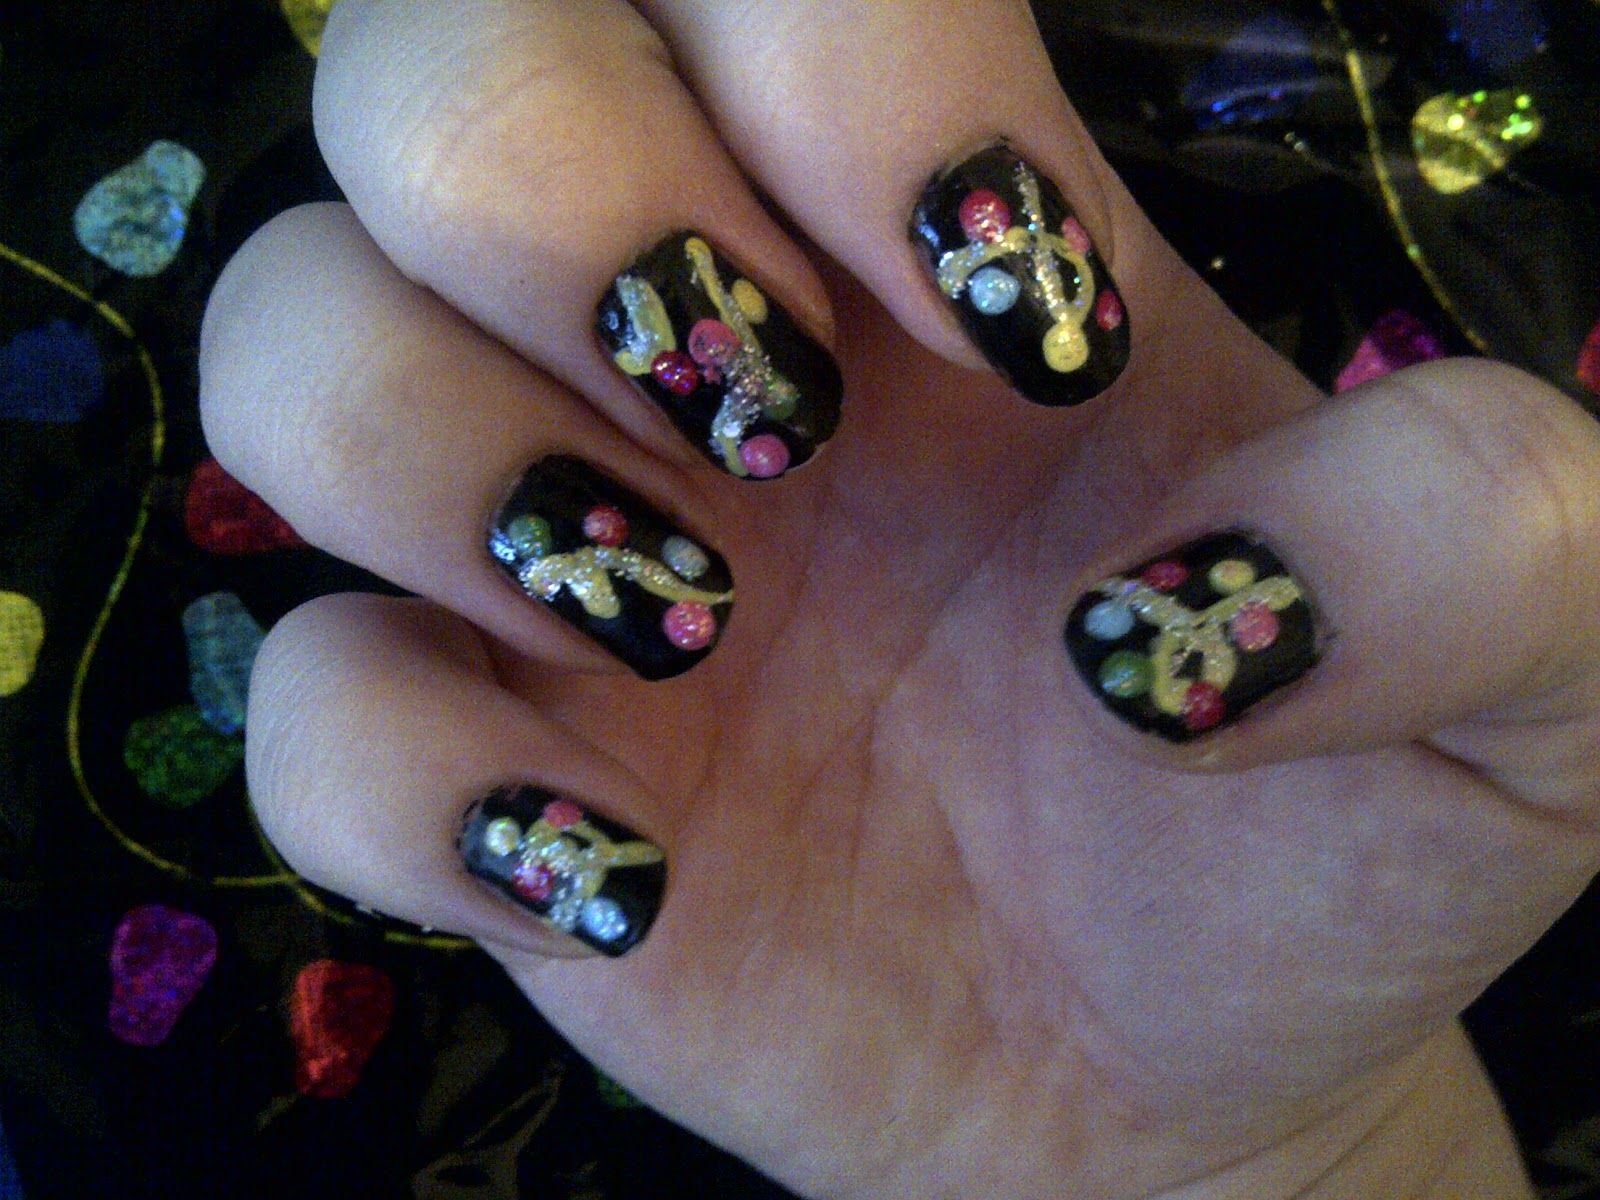 Dagadelic december nails theme inspired by gift wrap nail ideas